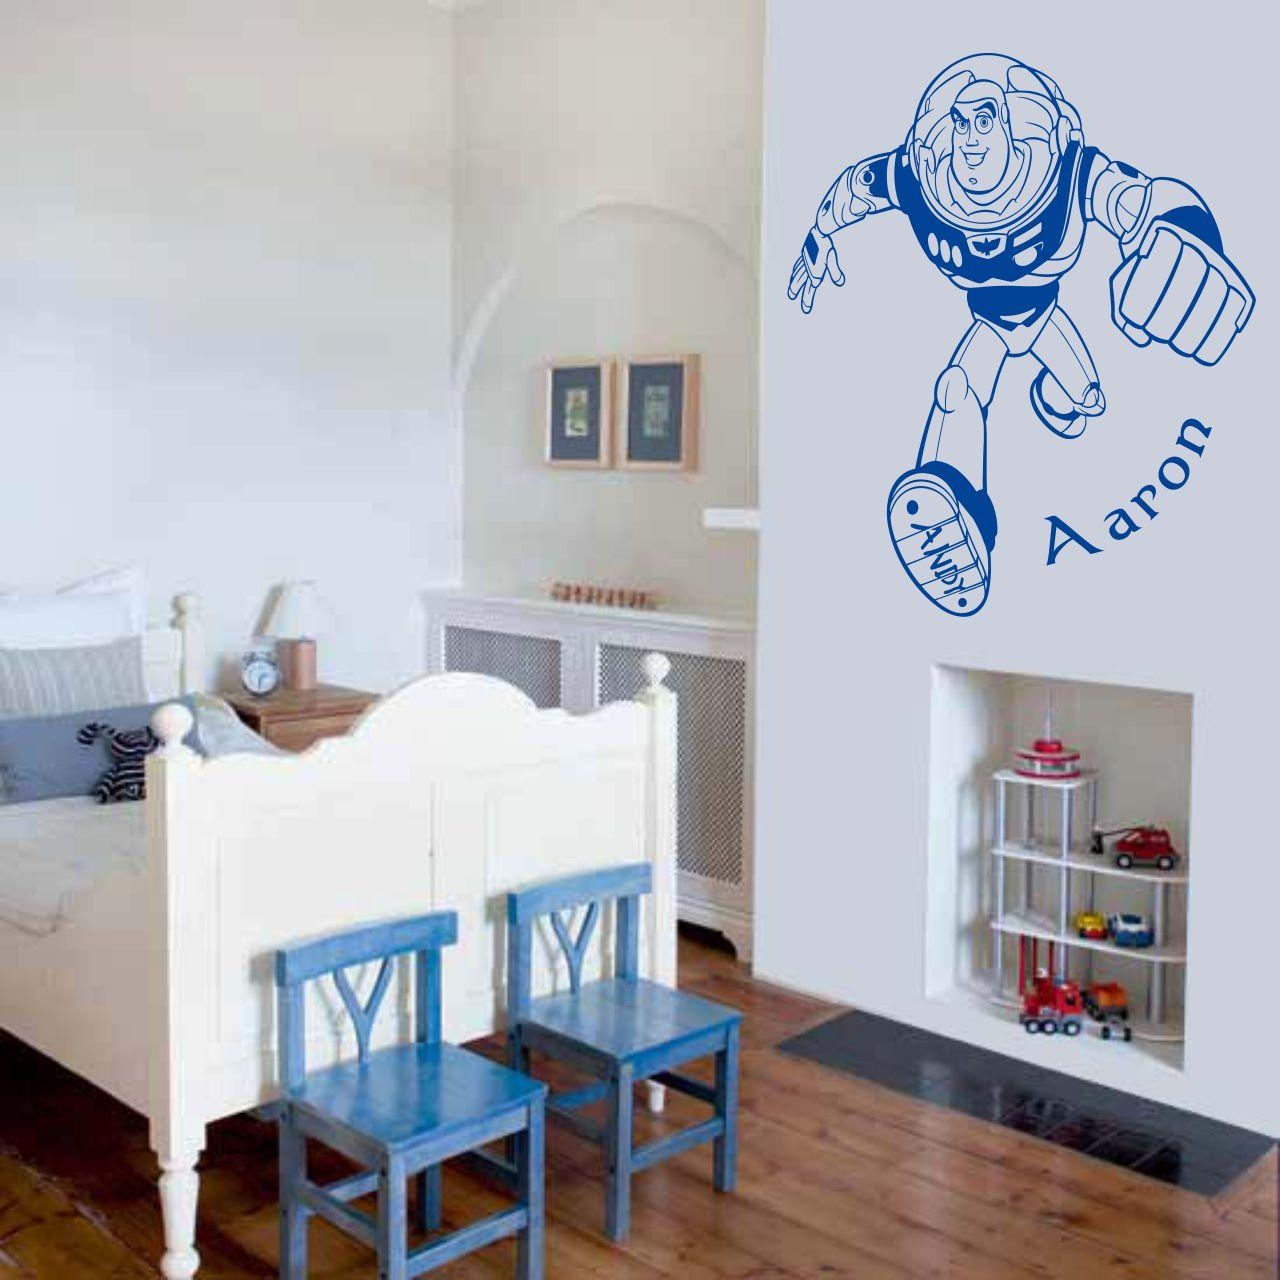 Toy Story Buzz Lightyear Wall Art Decal Vinyl Sticker Wall Inside Toy Story Wall Art (Image 17 of 20)